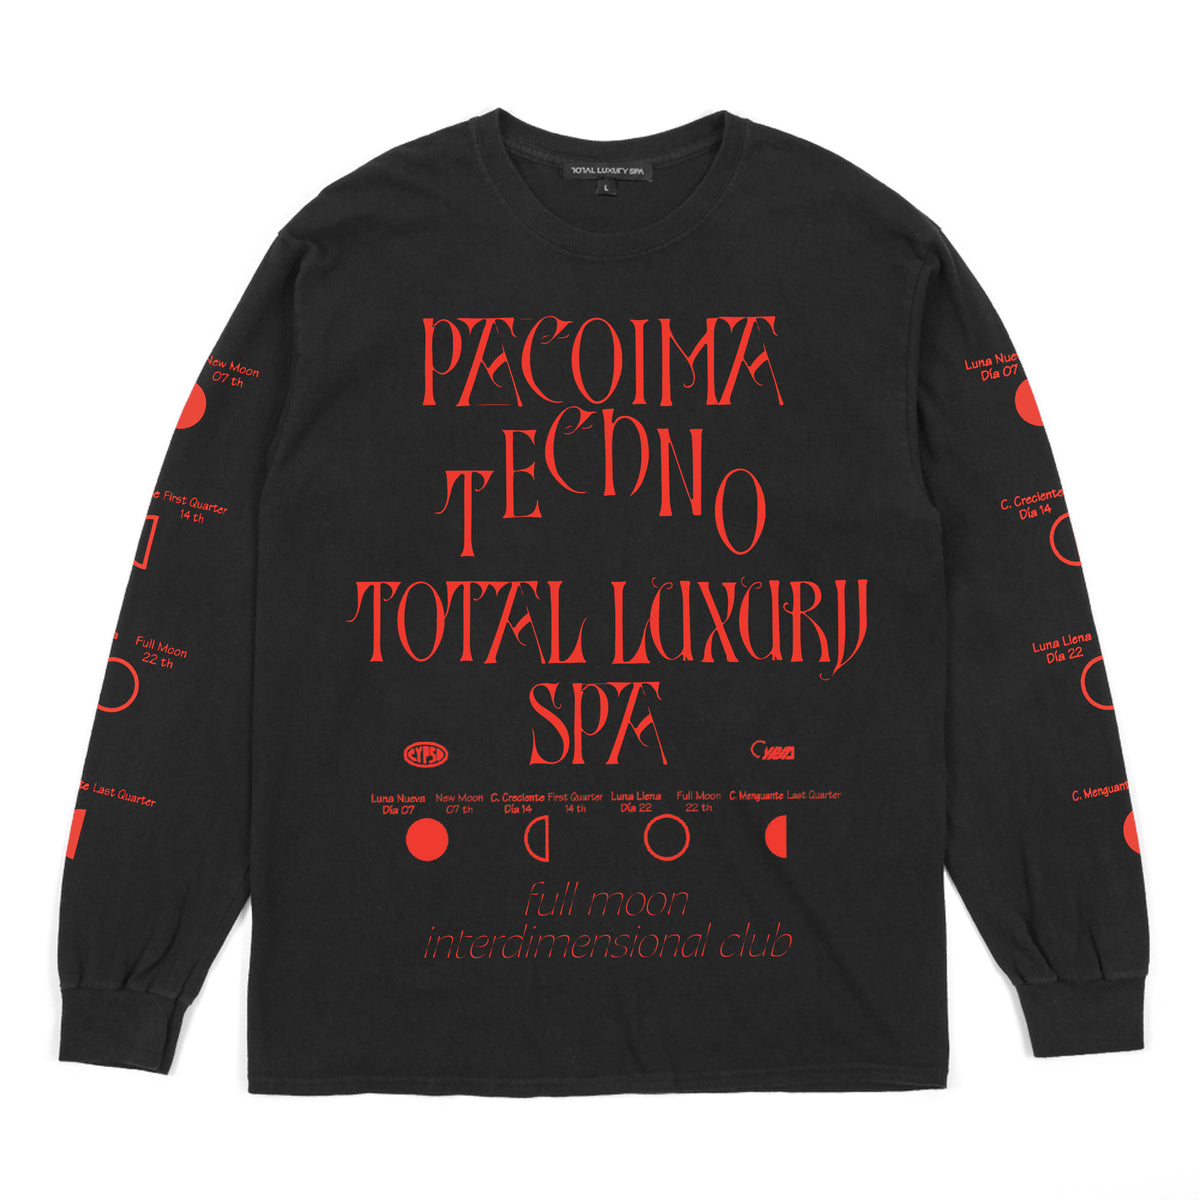 PACOIMA TECHNO - FULL MOON -  L/S TEE - BLACK